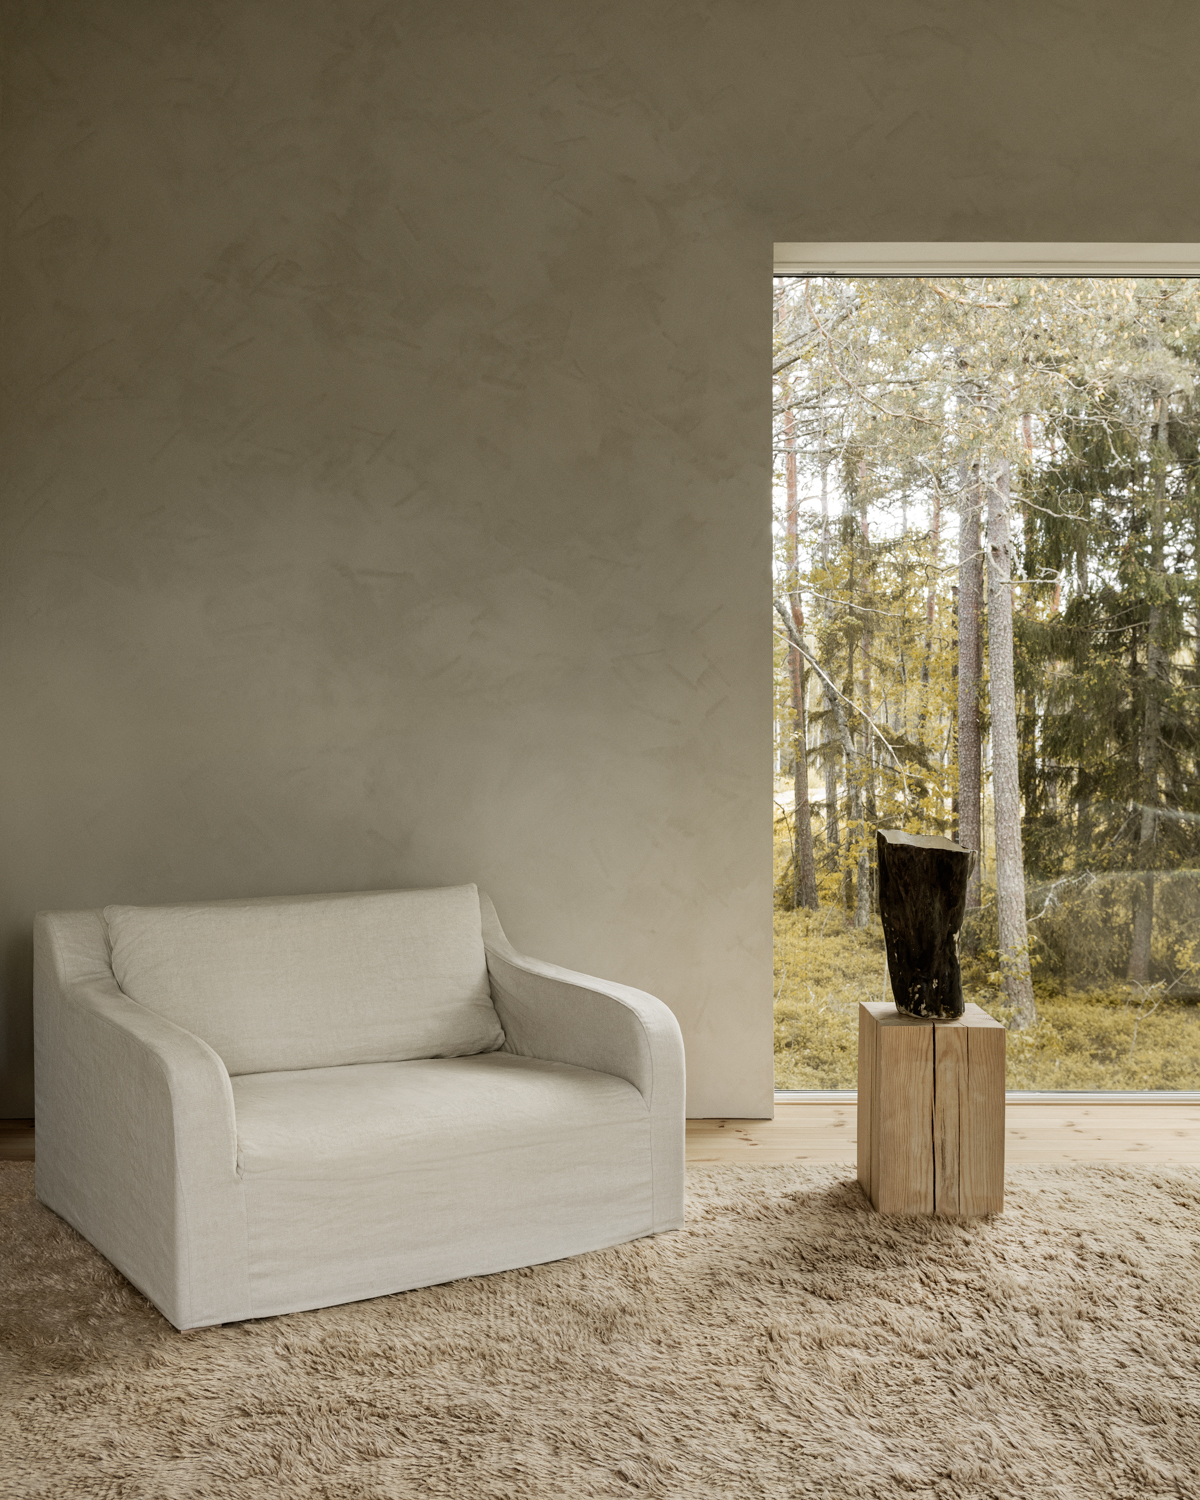 Fields in color sand displayed in a modern room with windows displaying the woods around the house.